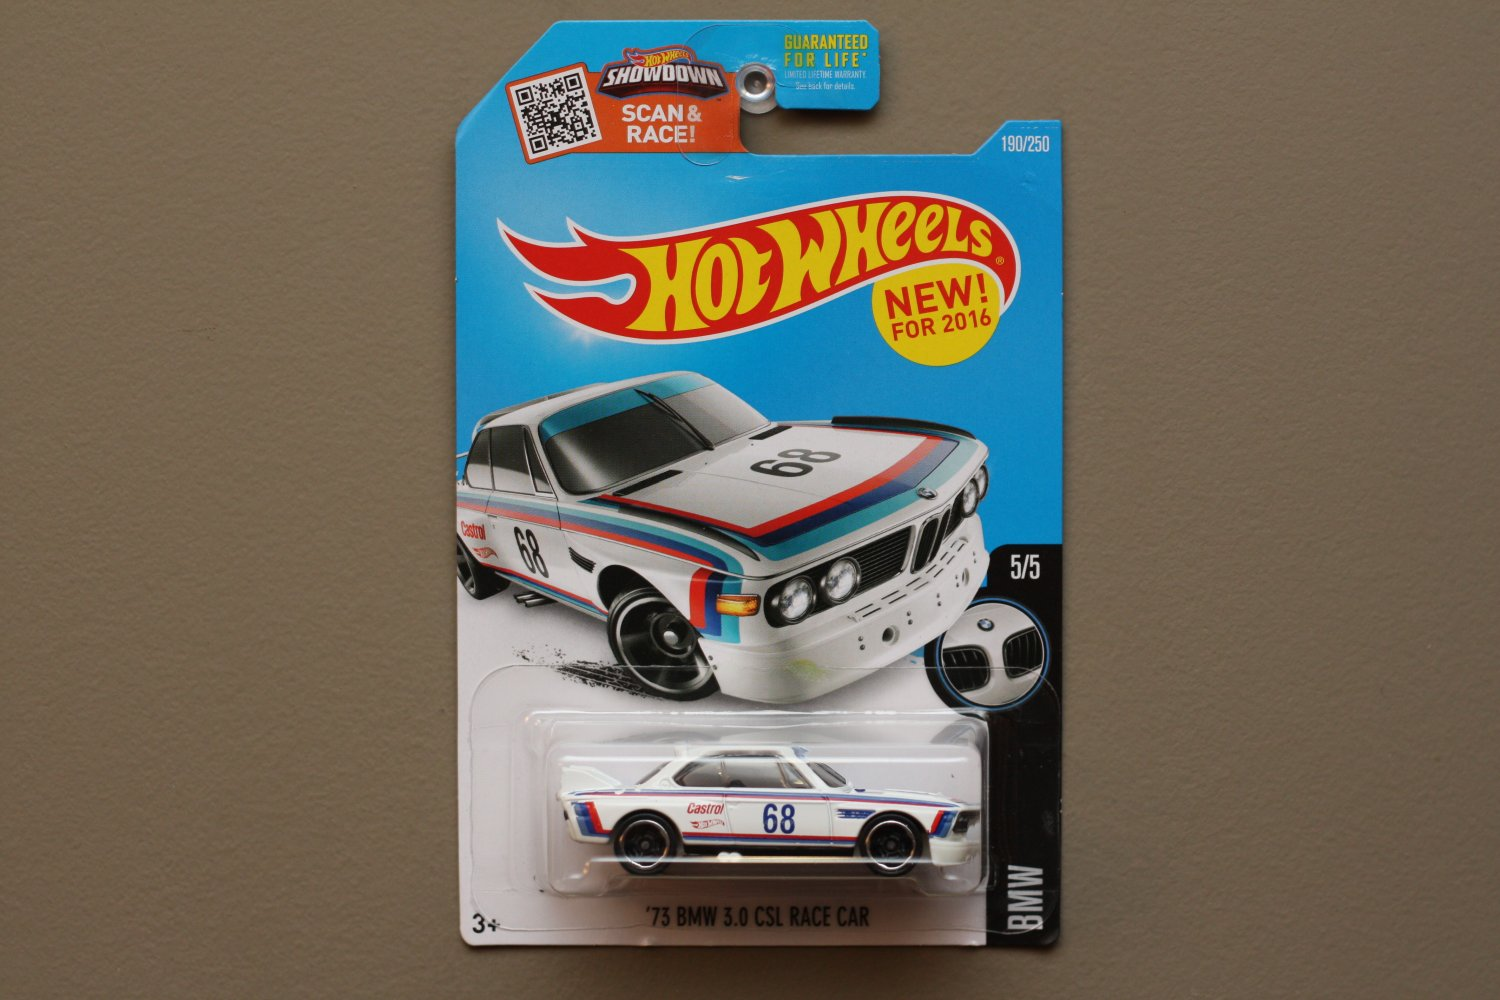 Hot Wheels 2016 BMW '73 BMW 3.0 CSL Race Car (white) (SEE CONDITION)